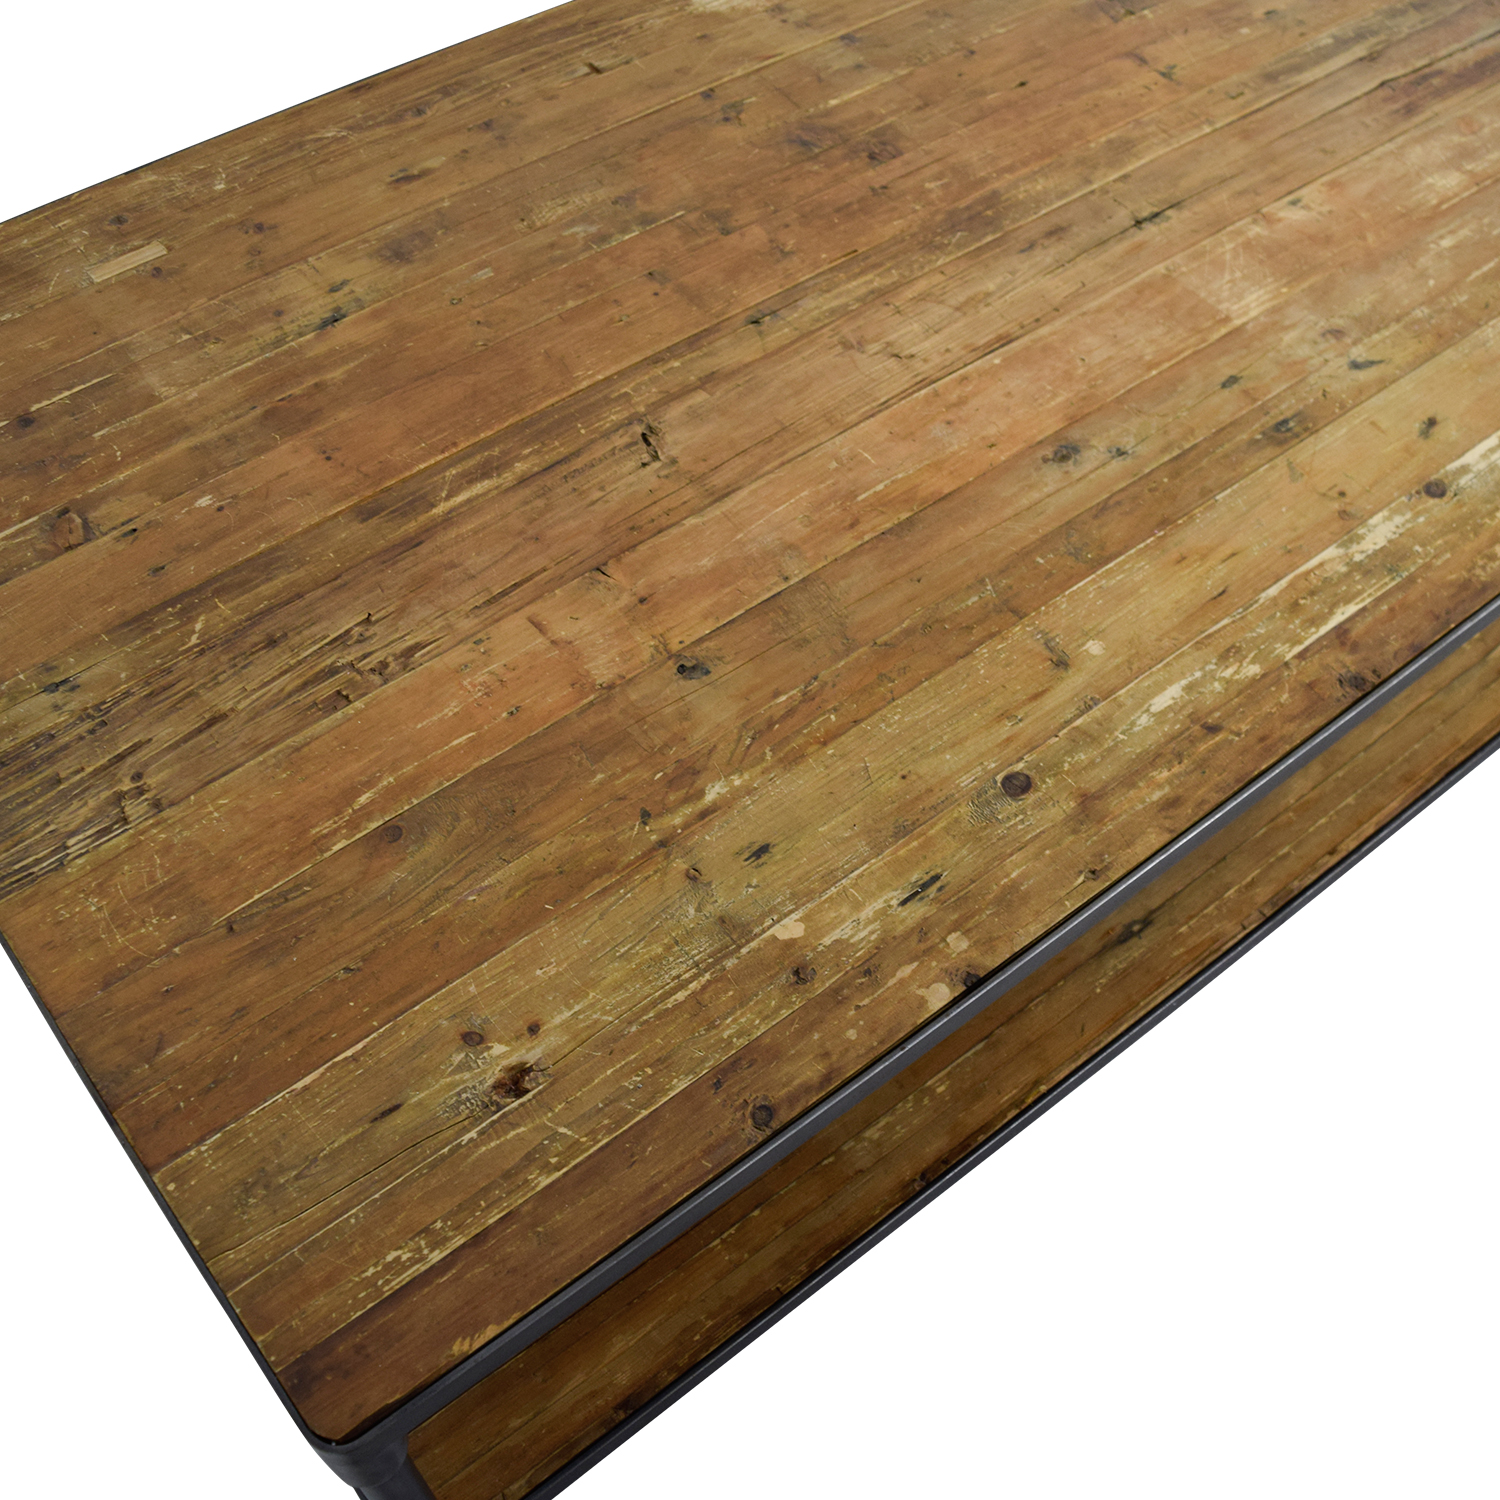 ABC Carpet & Home ABC Carpet & Home Reclaimed Wood Coffee Table discount